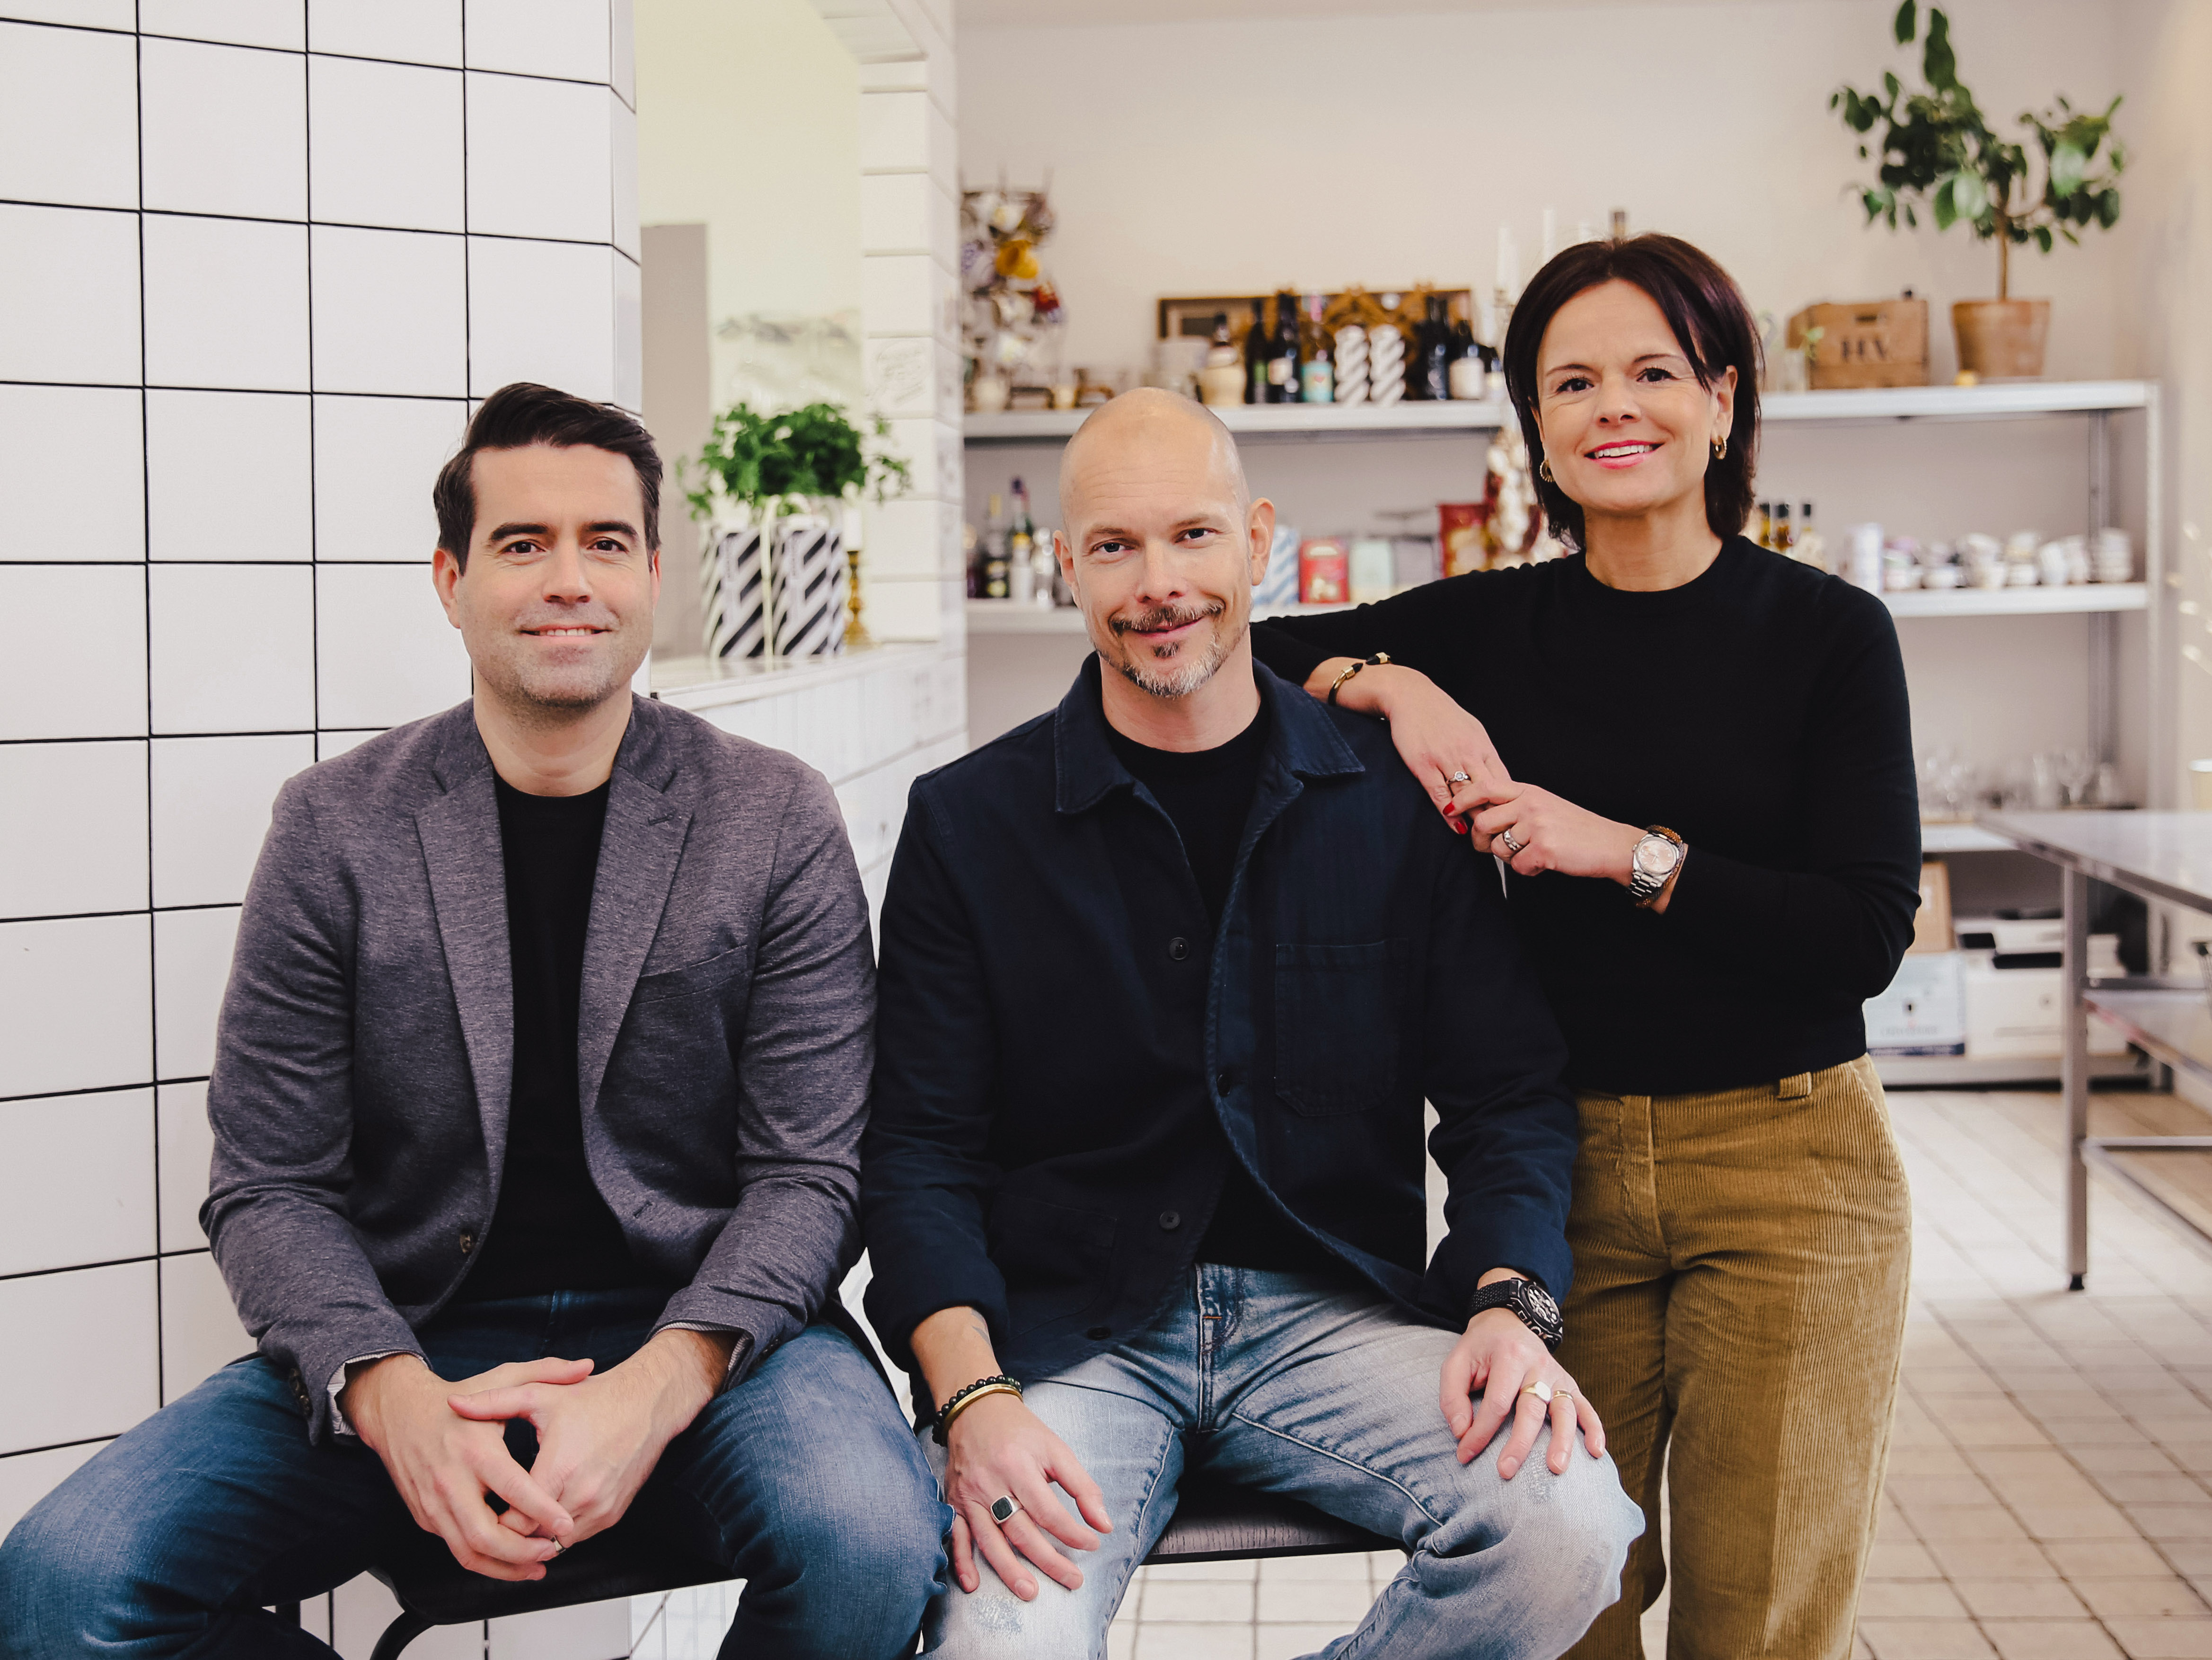 Swedish startup Sproud raises £4.8m from London-based VGC Partners for plant-based milk